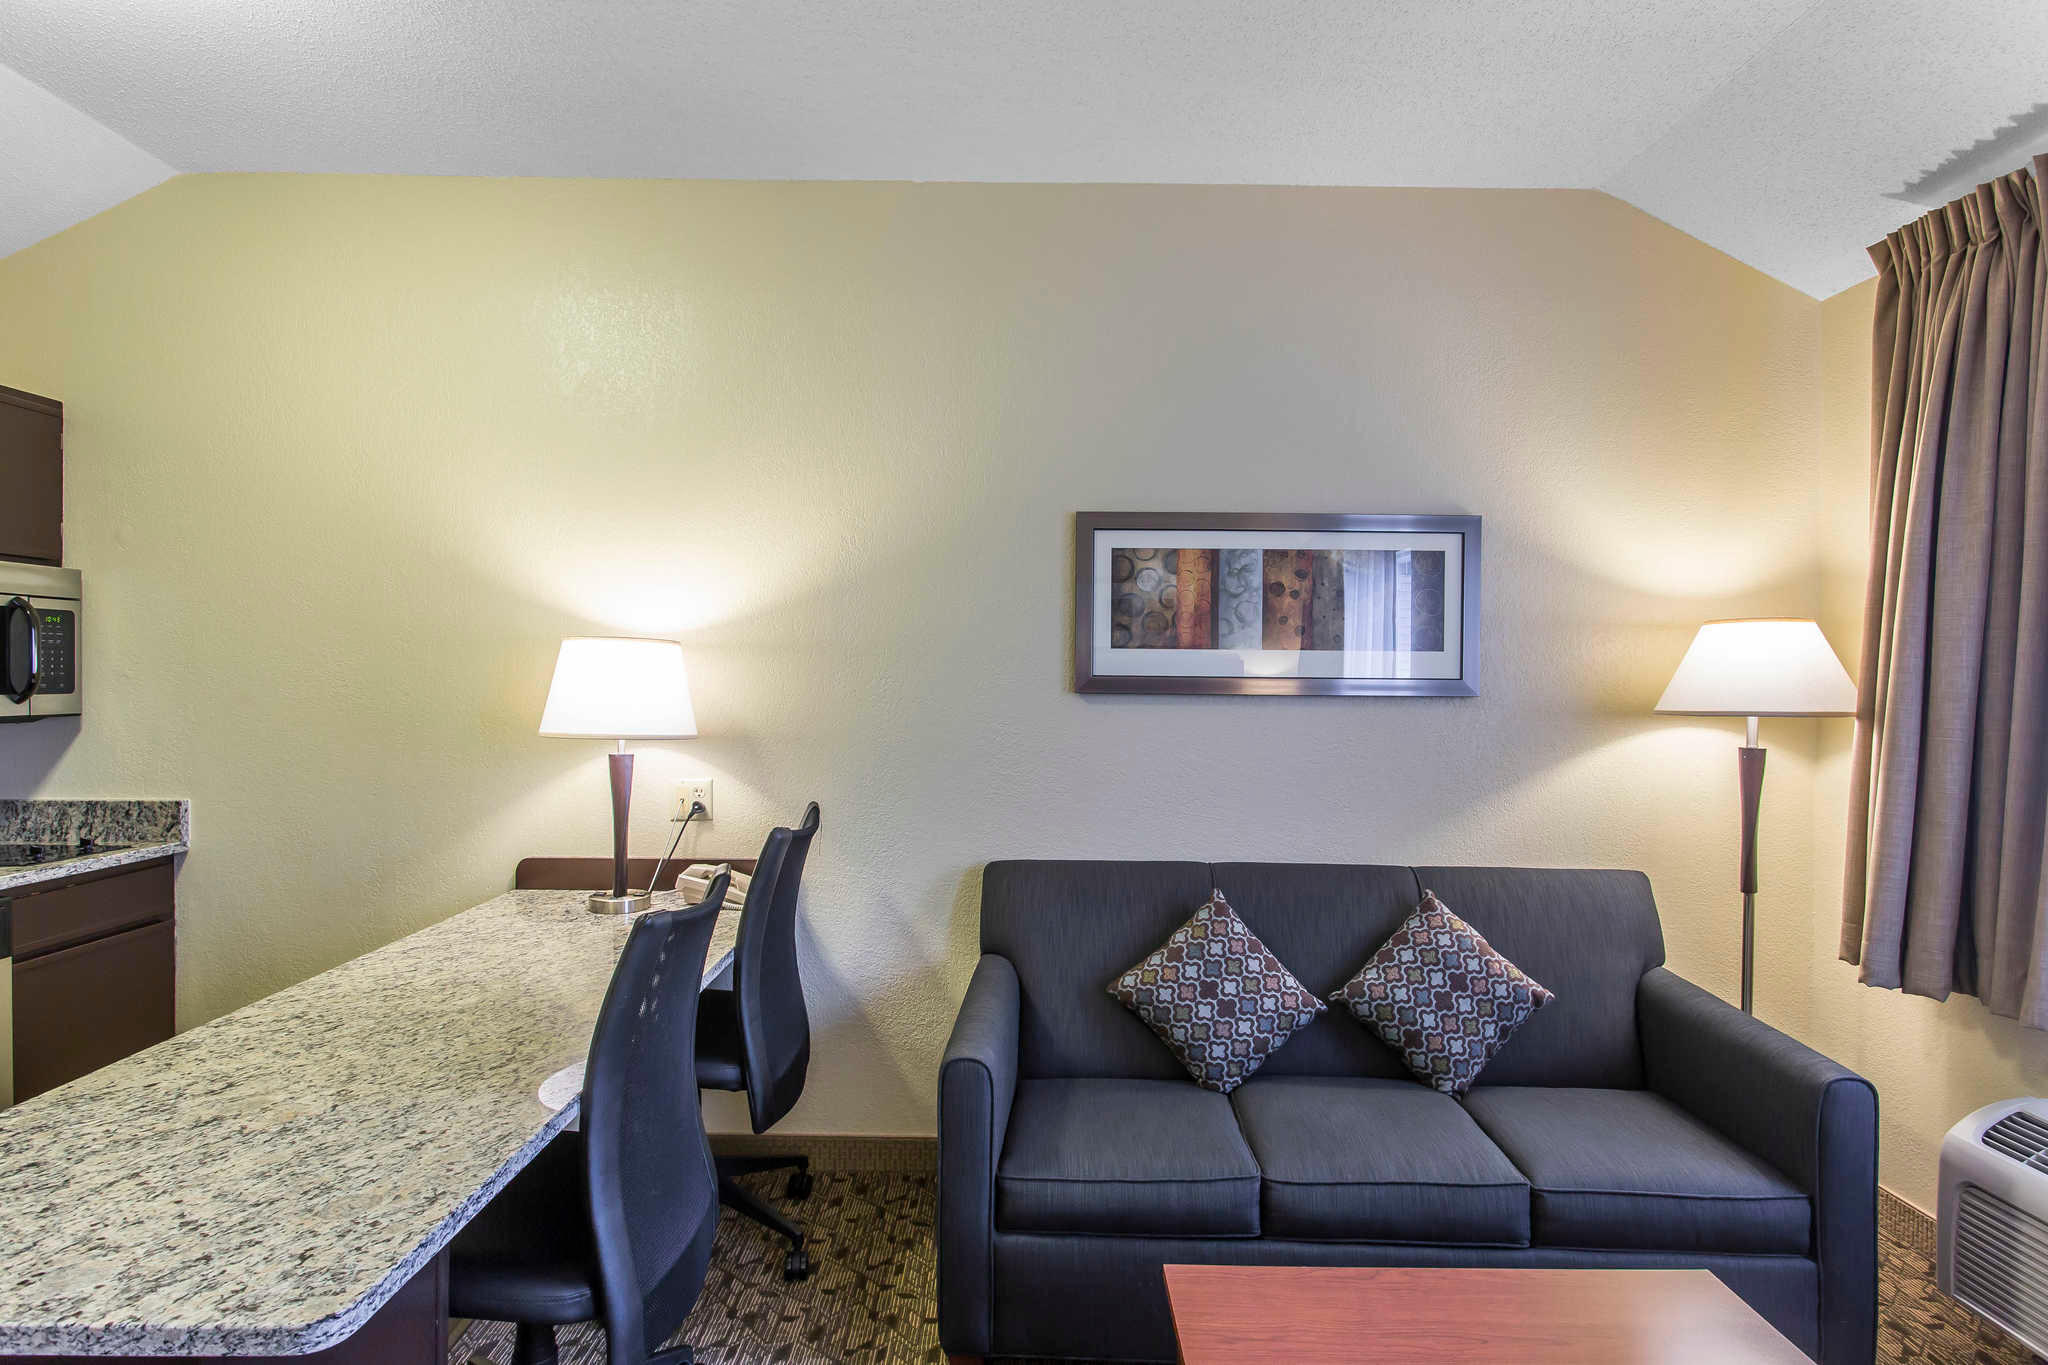 MainStay Suites image 25